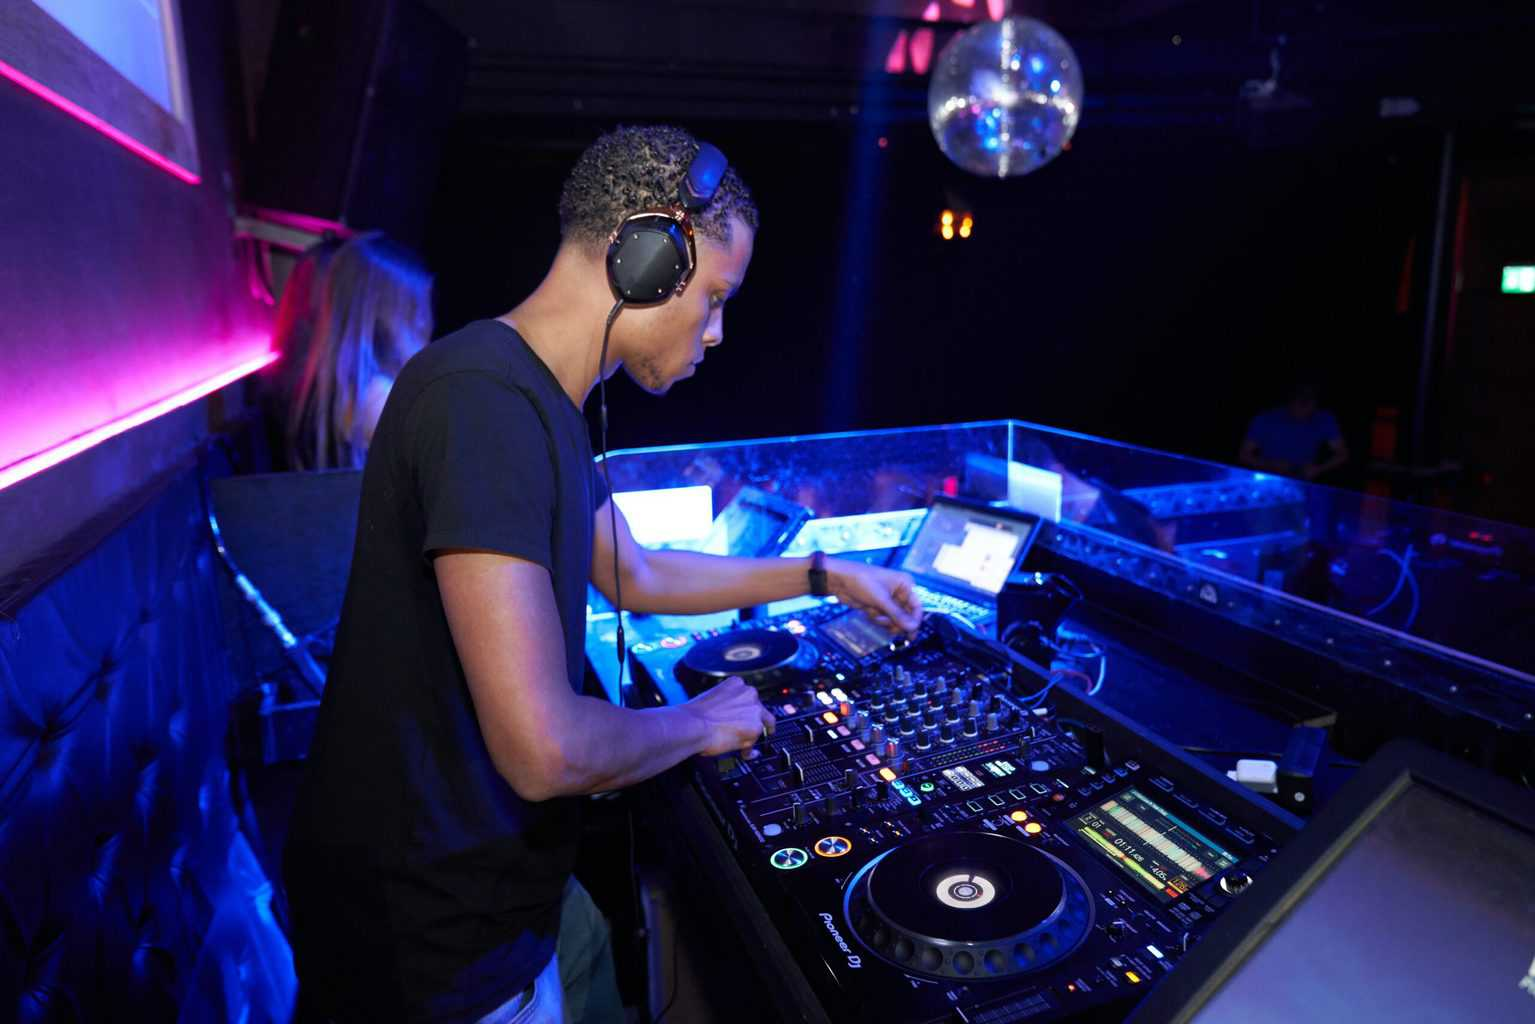 DJ mixing sounds at a party, while he's illuminated by lights